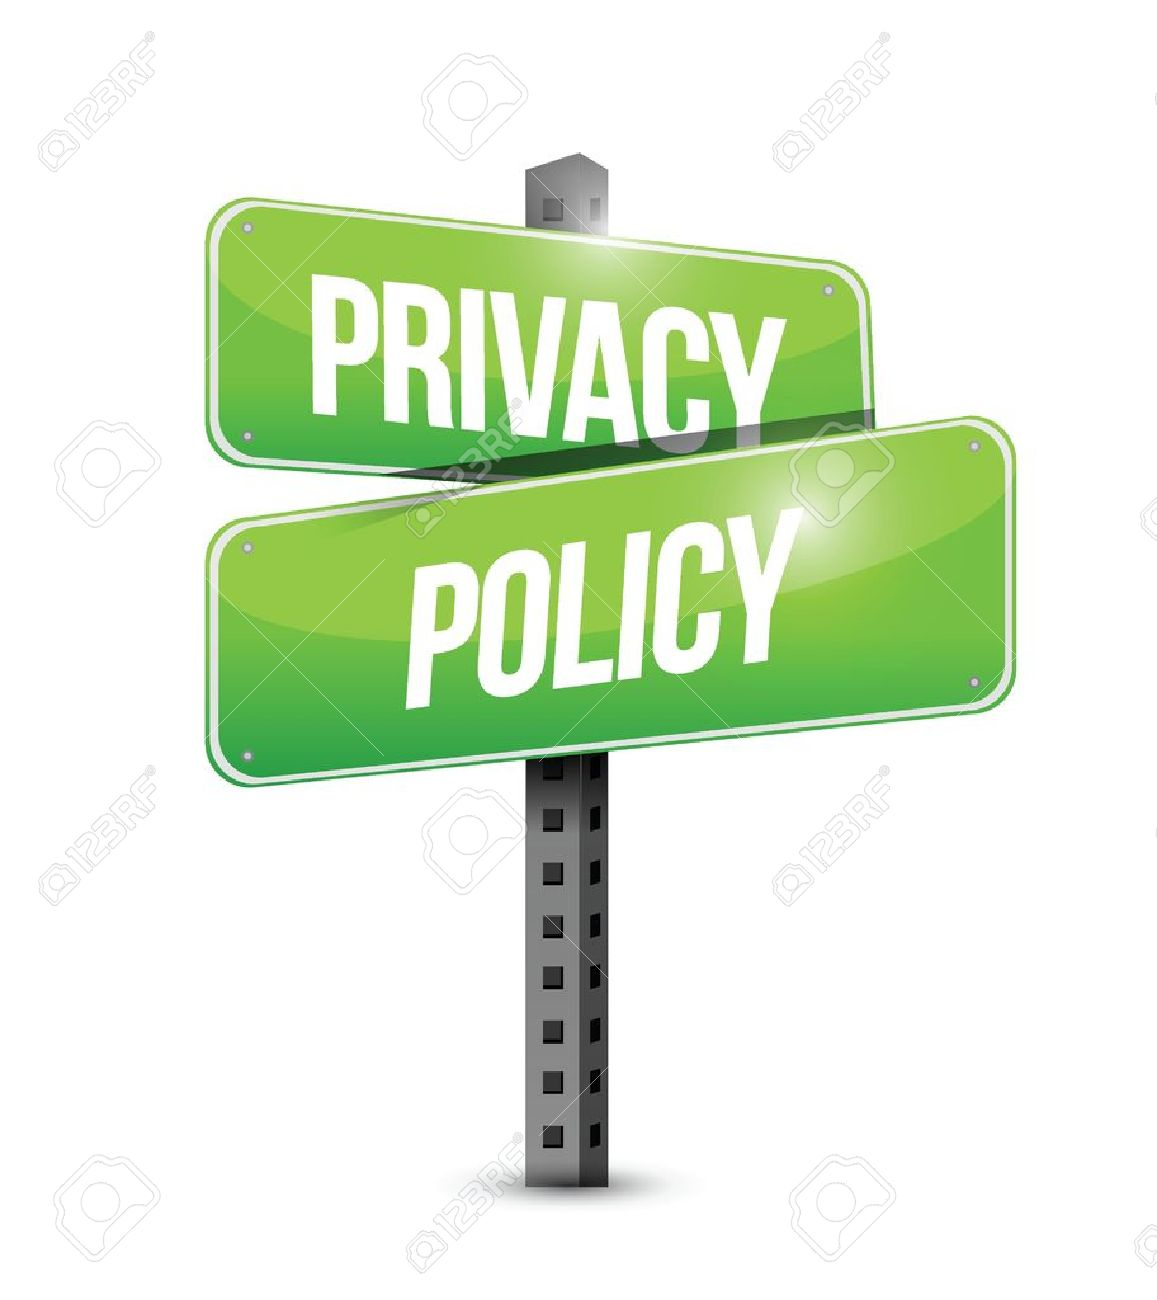 1,750 Privacy Policy Stock Illustrations, Cliparts And Royalty.